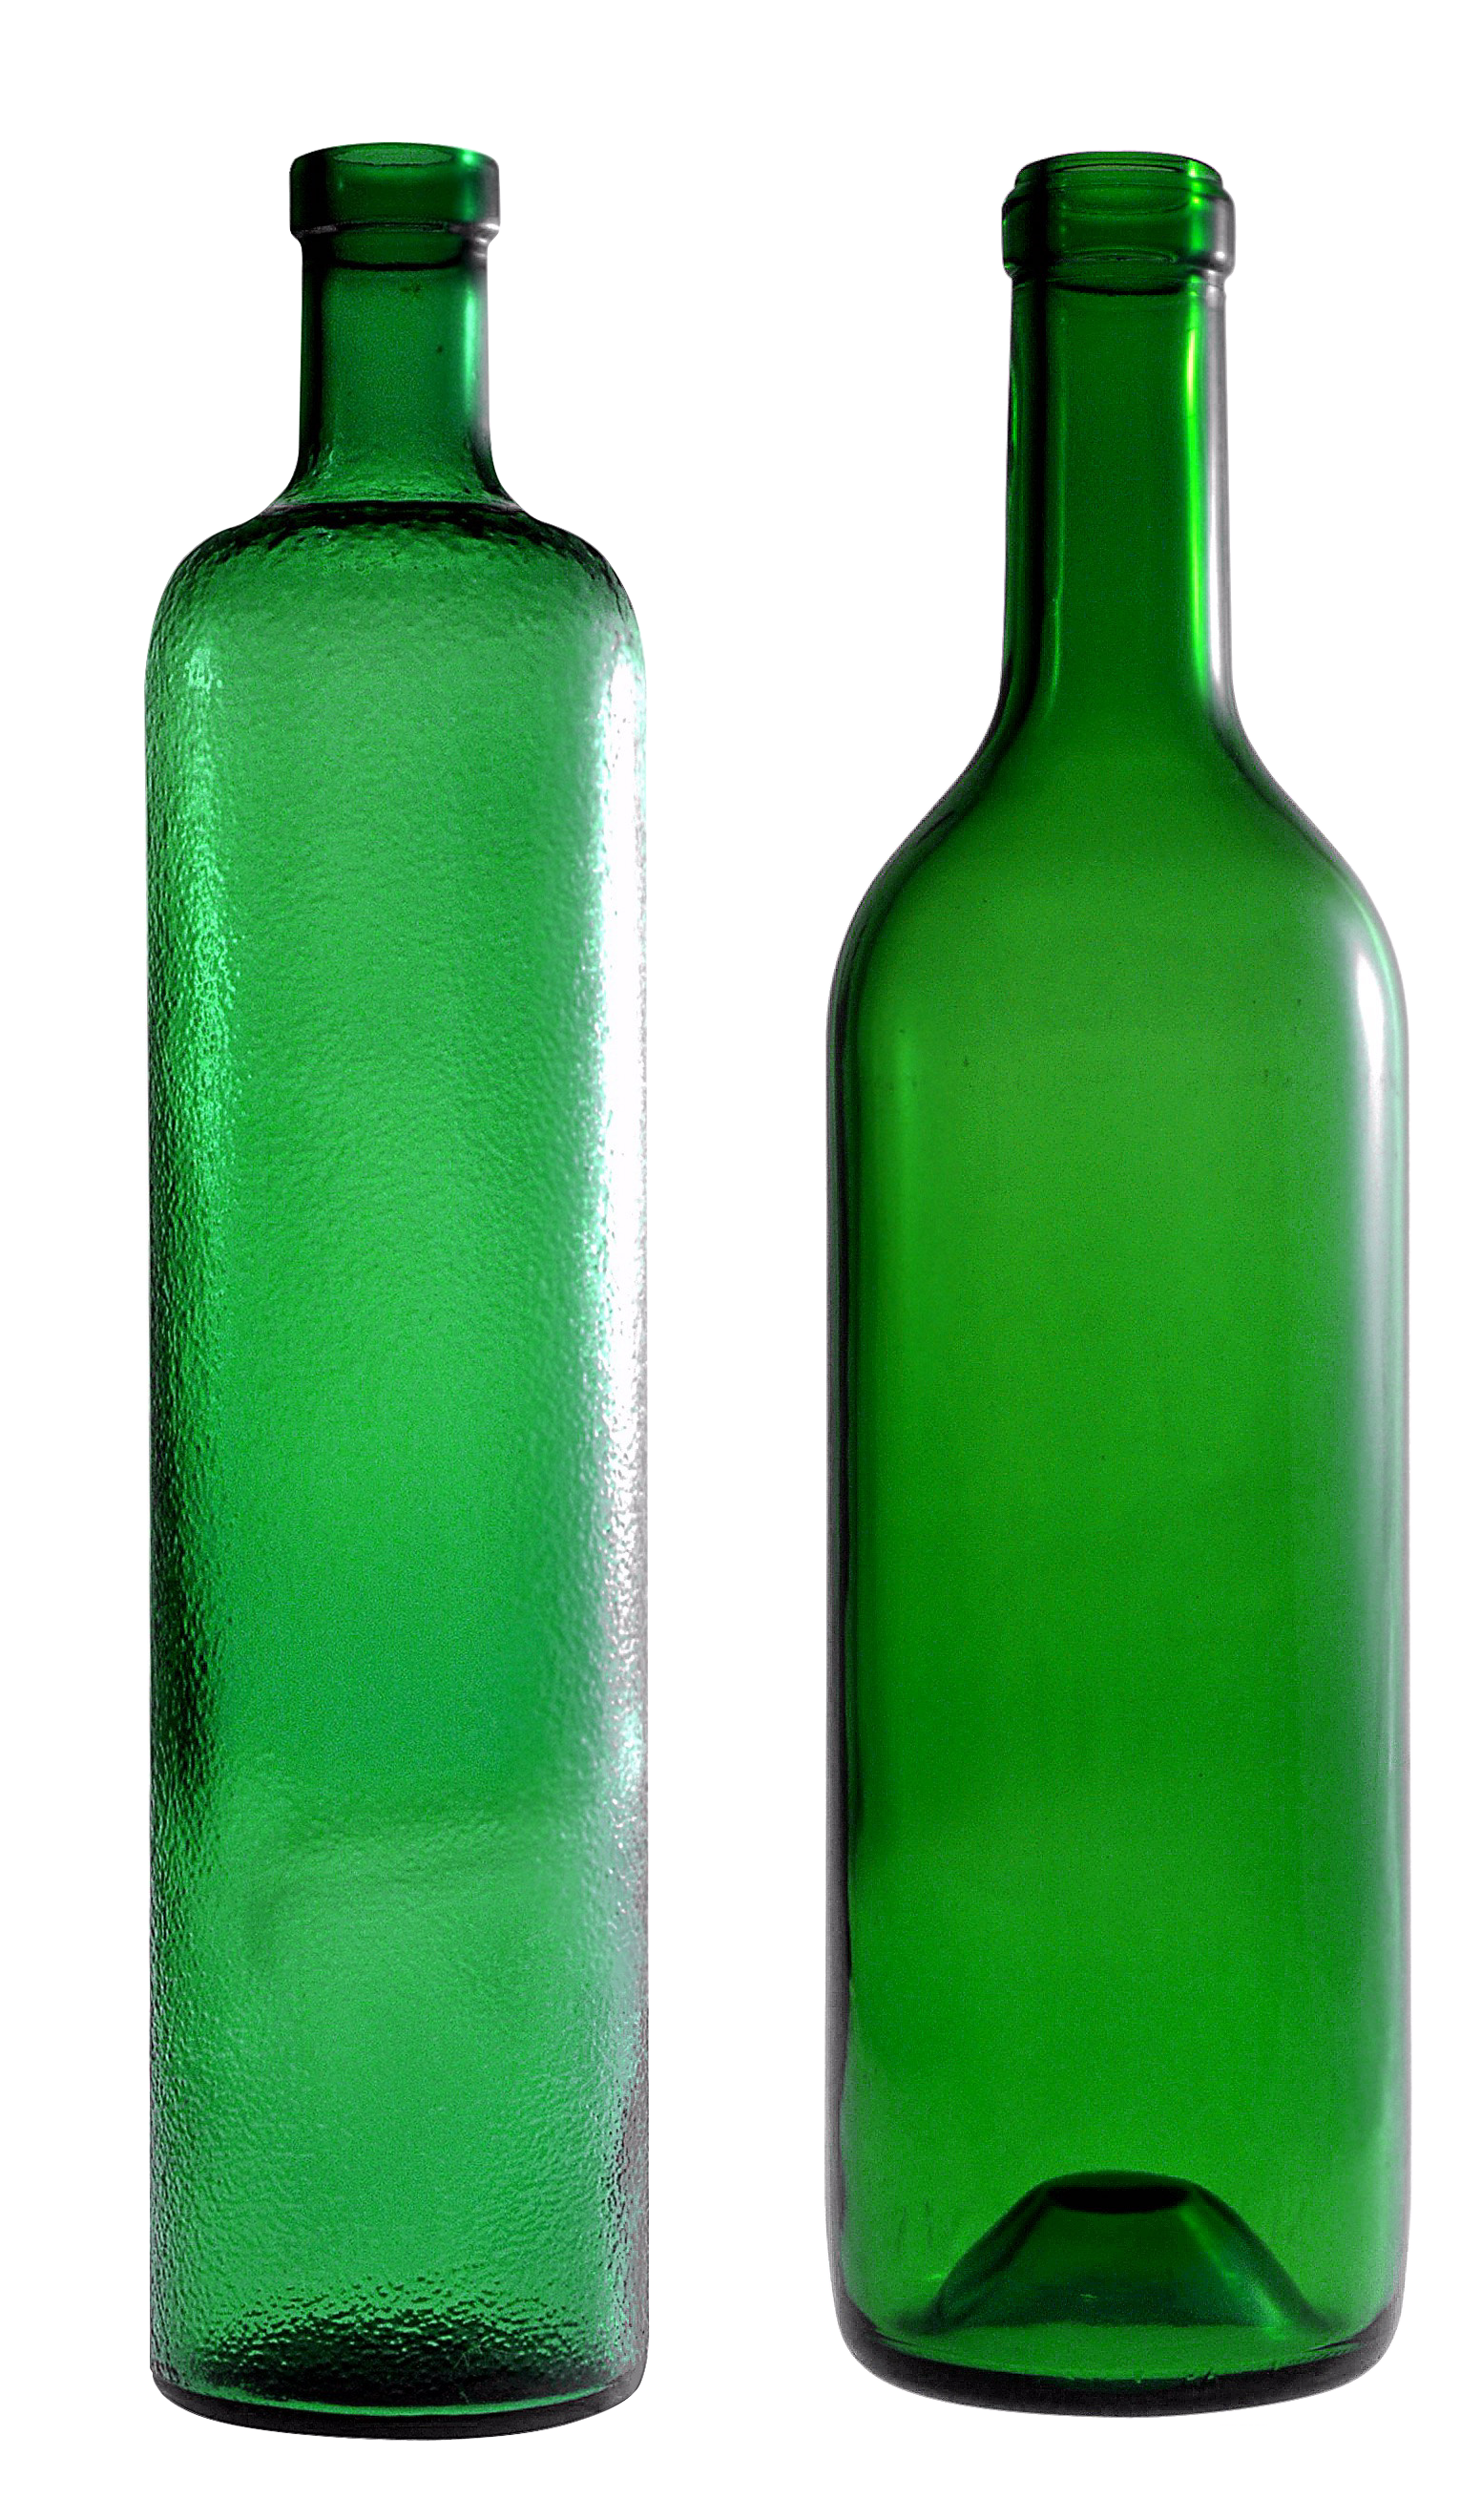 empty green glass bottle PNG image - Bottle PNG